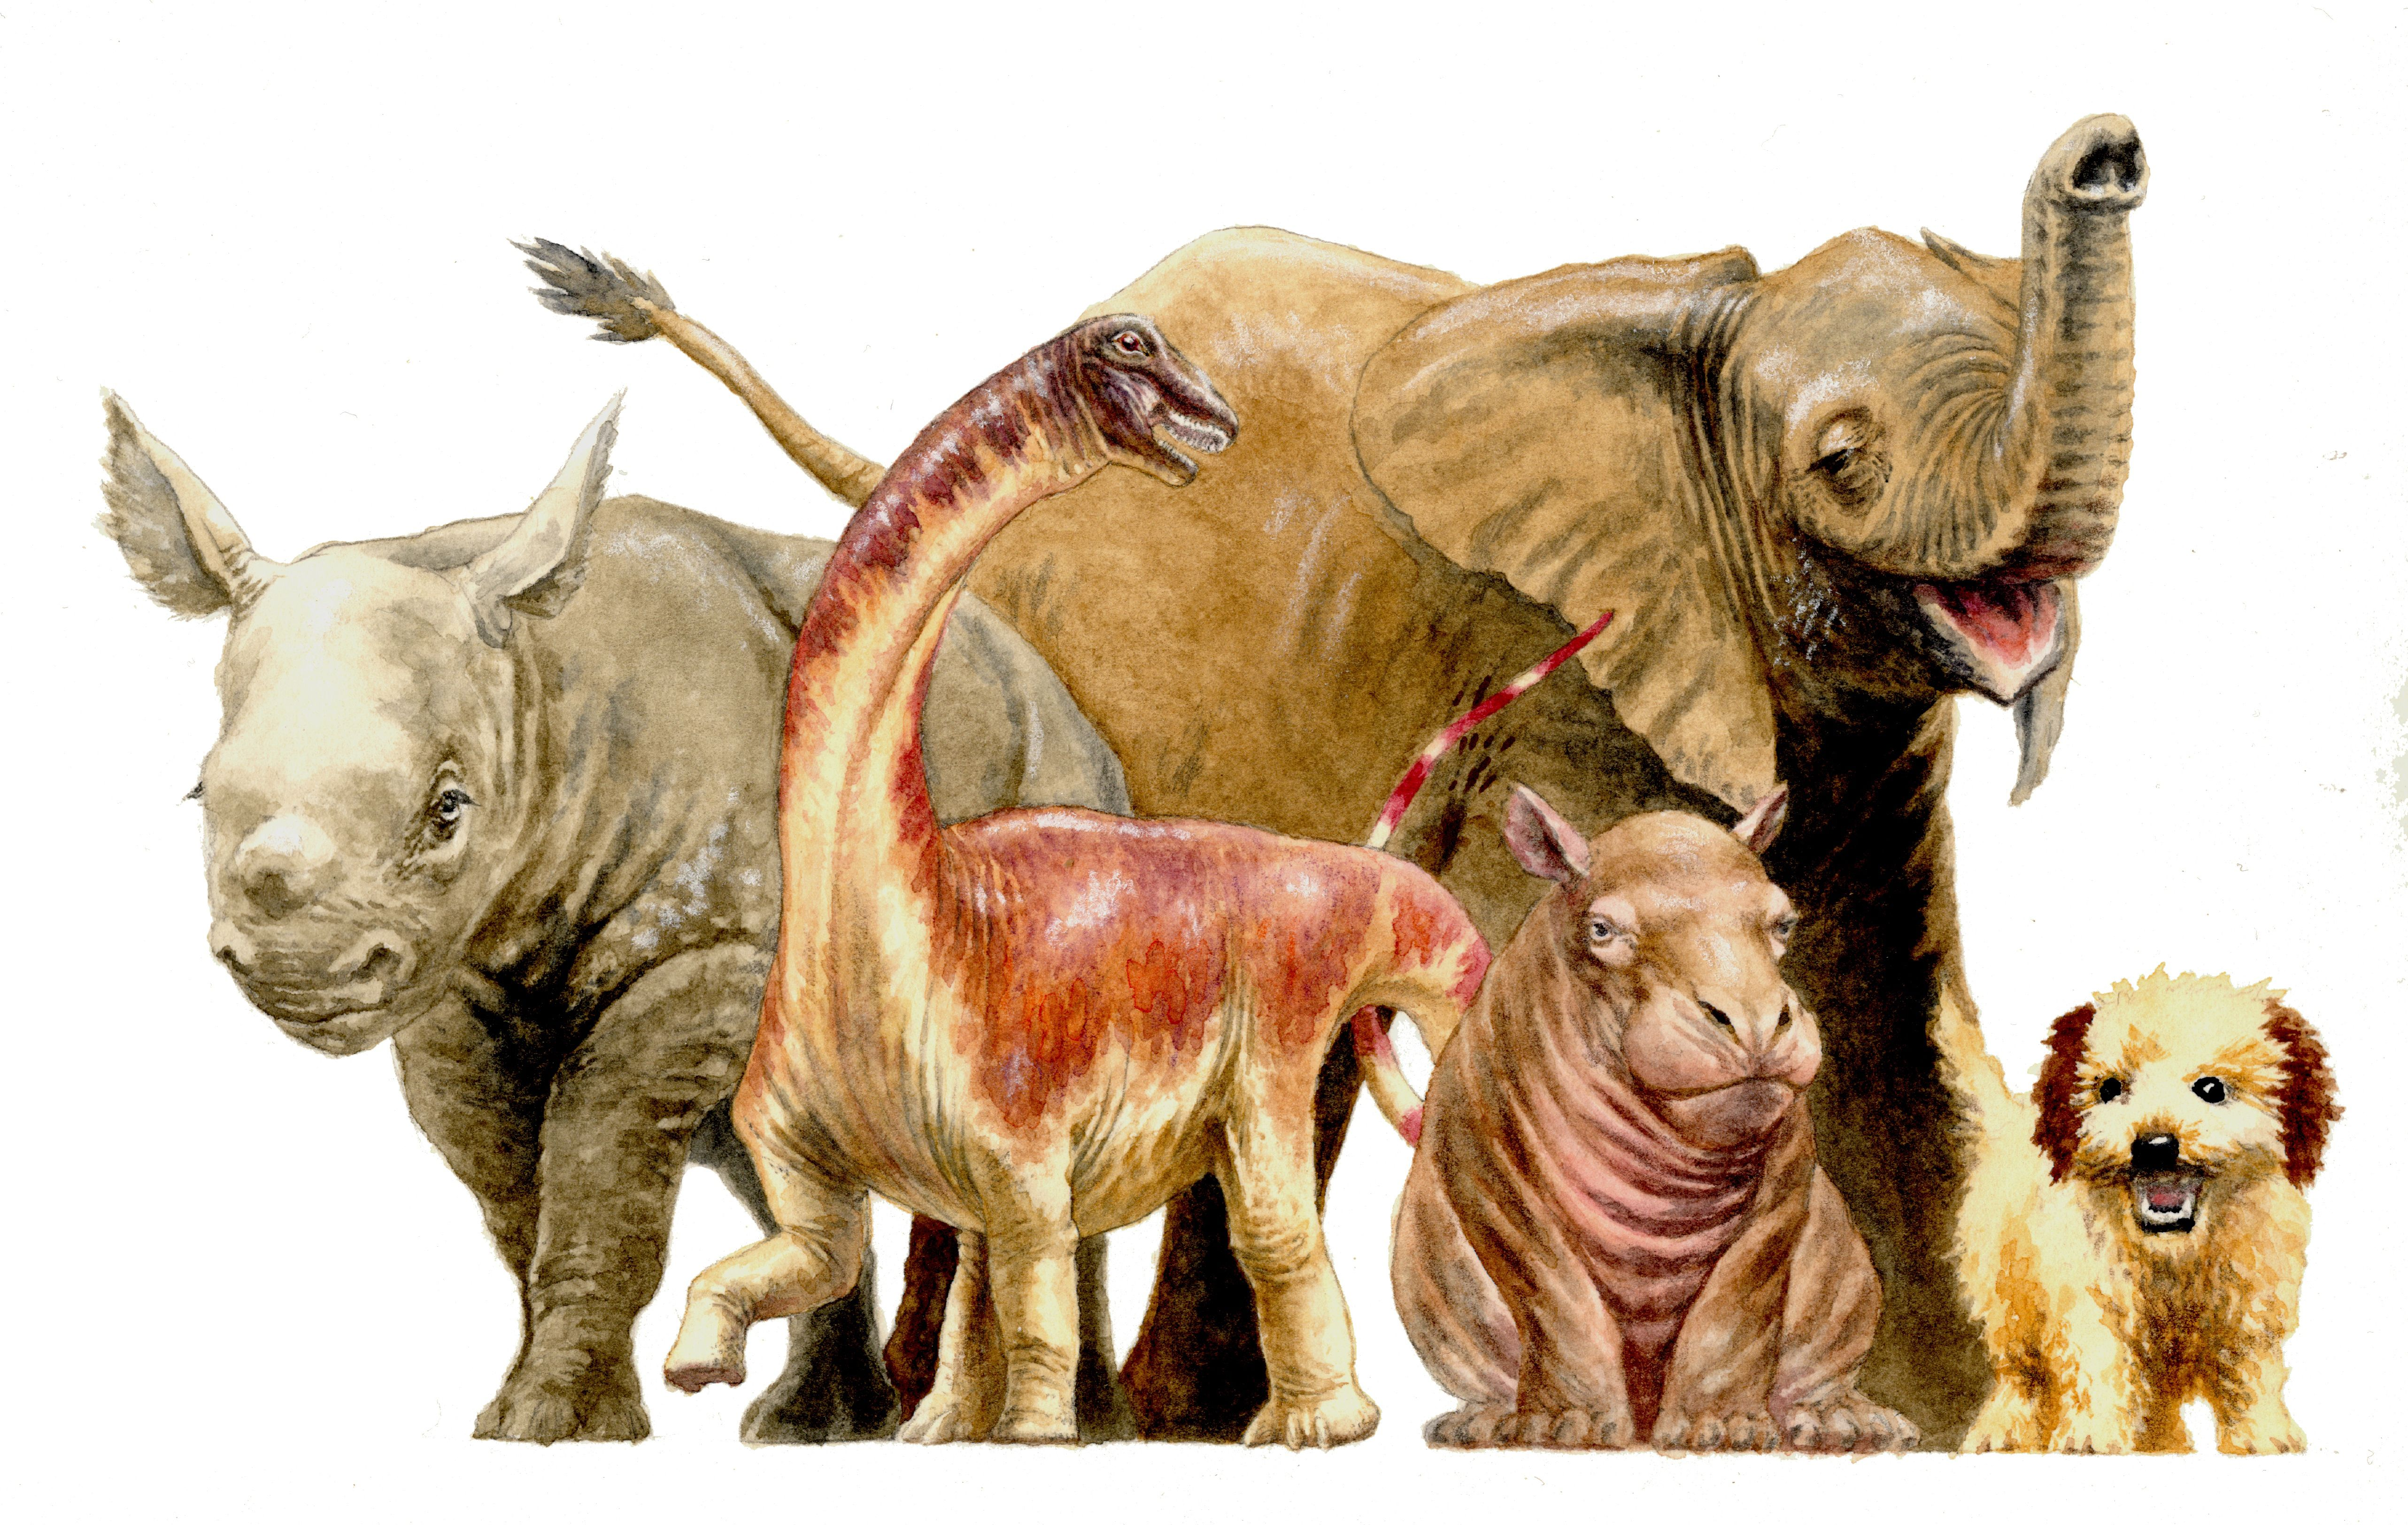 Baby dinosaur fossils reveal rapid growth of gigantic creatures